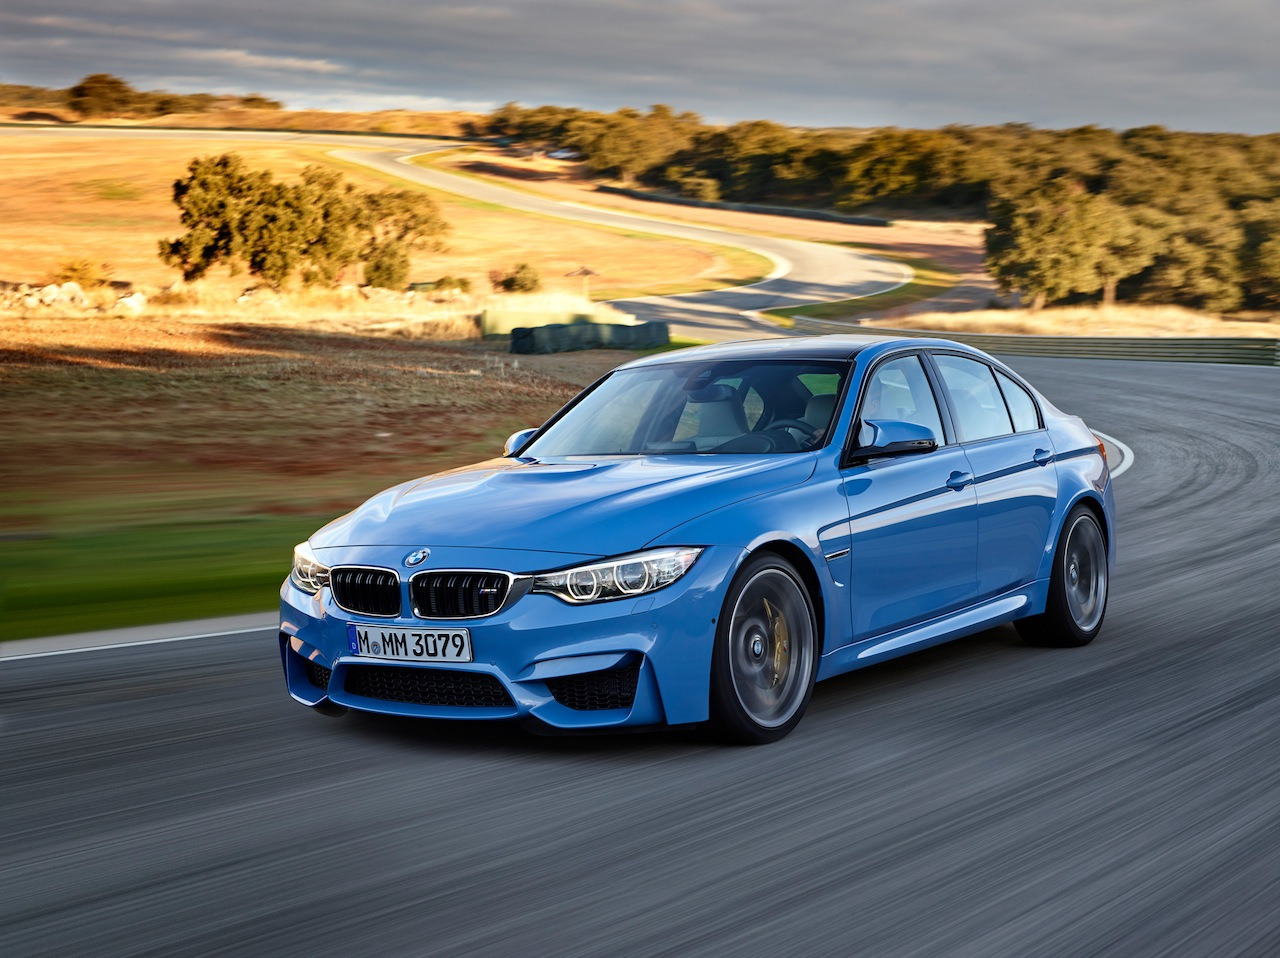 BMW Has Made Enhanced USB Functionality And Bluetooth Connectivity Standard  On All M5 Models. Owners Can Now Browse Their Libraries Via Bluetooth And  Sync A ...